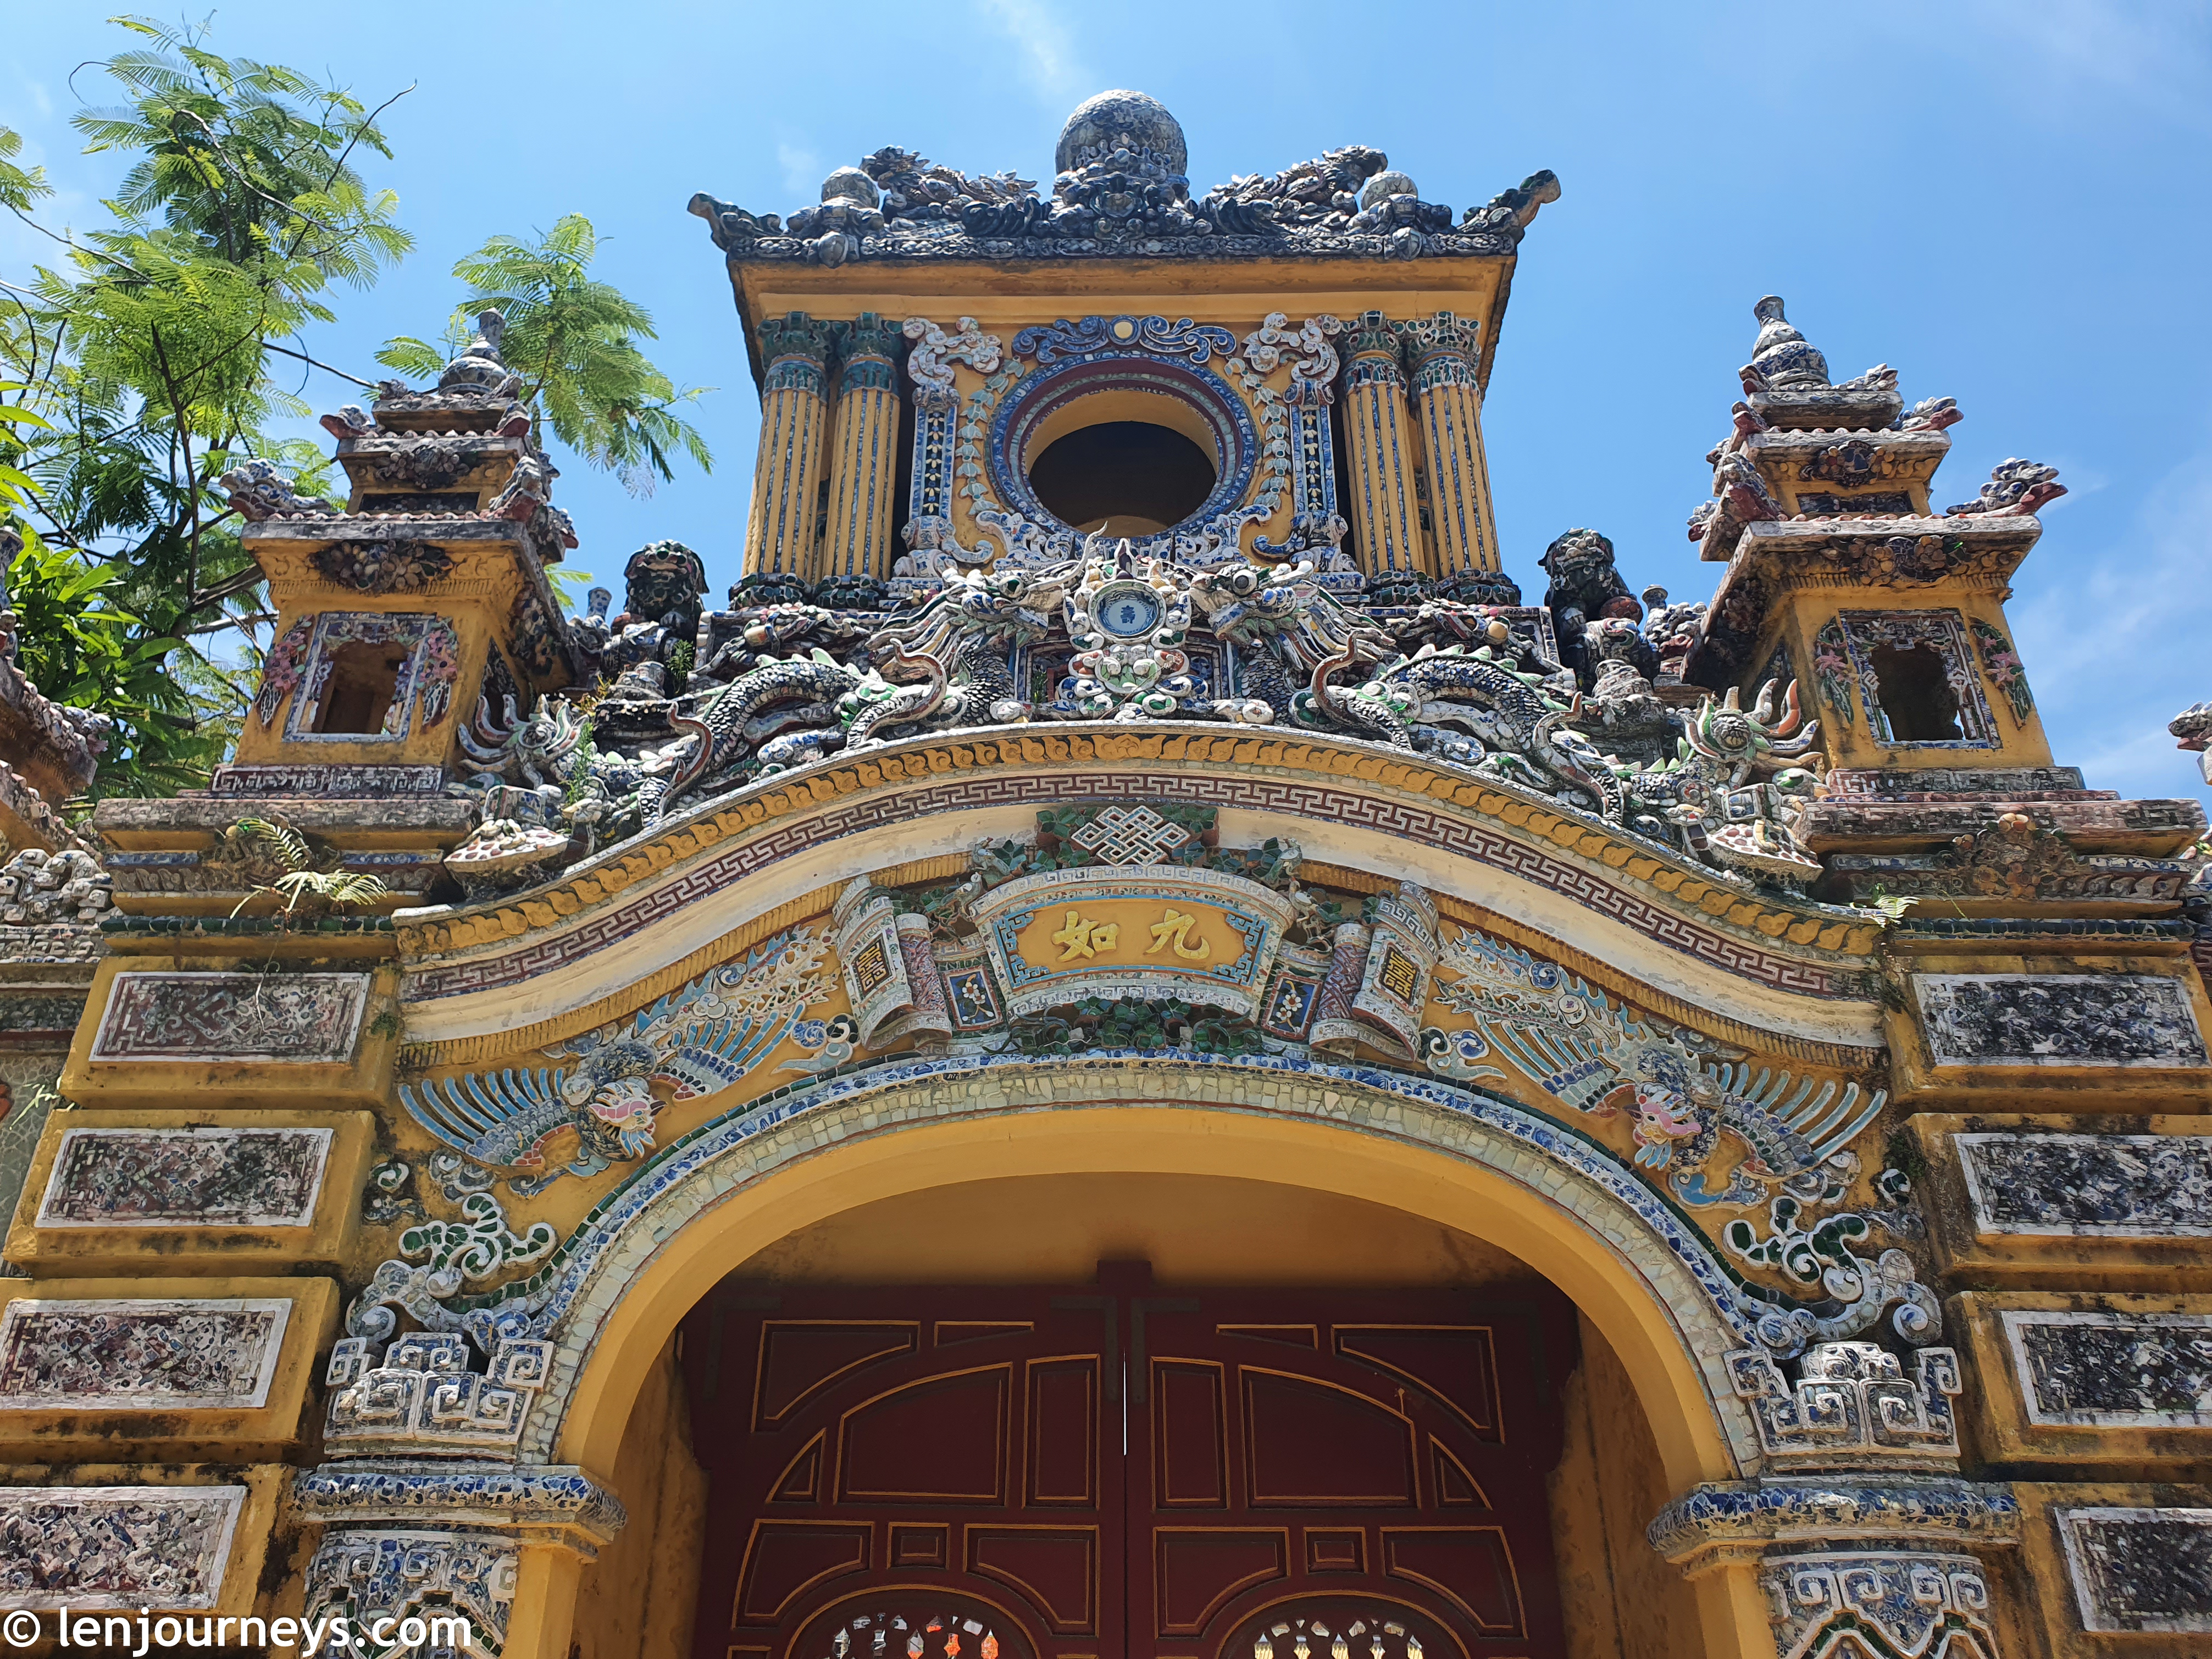 Beautiful entrance to An Dinh Palace